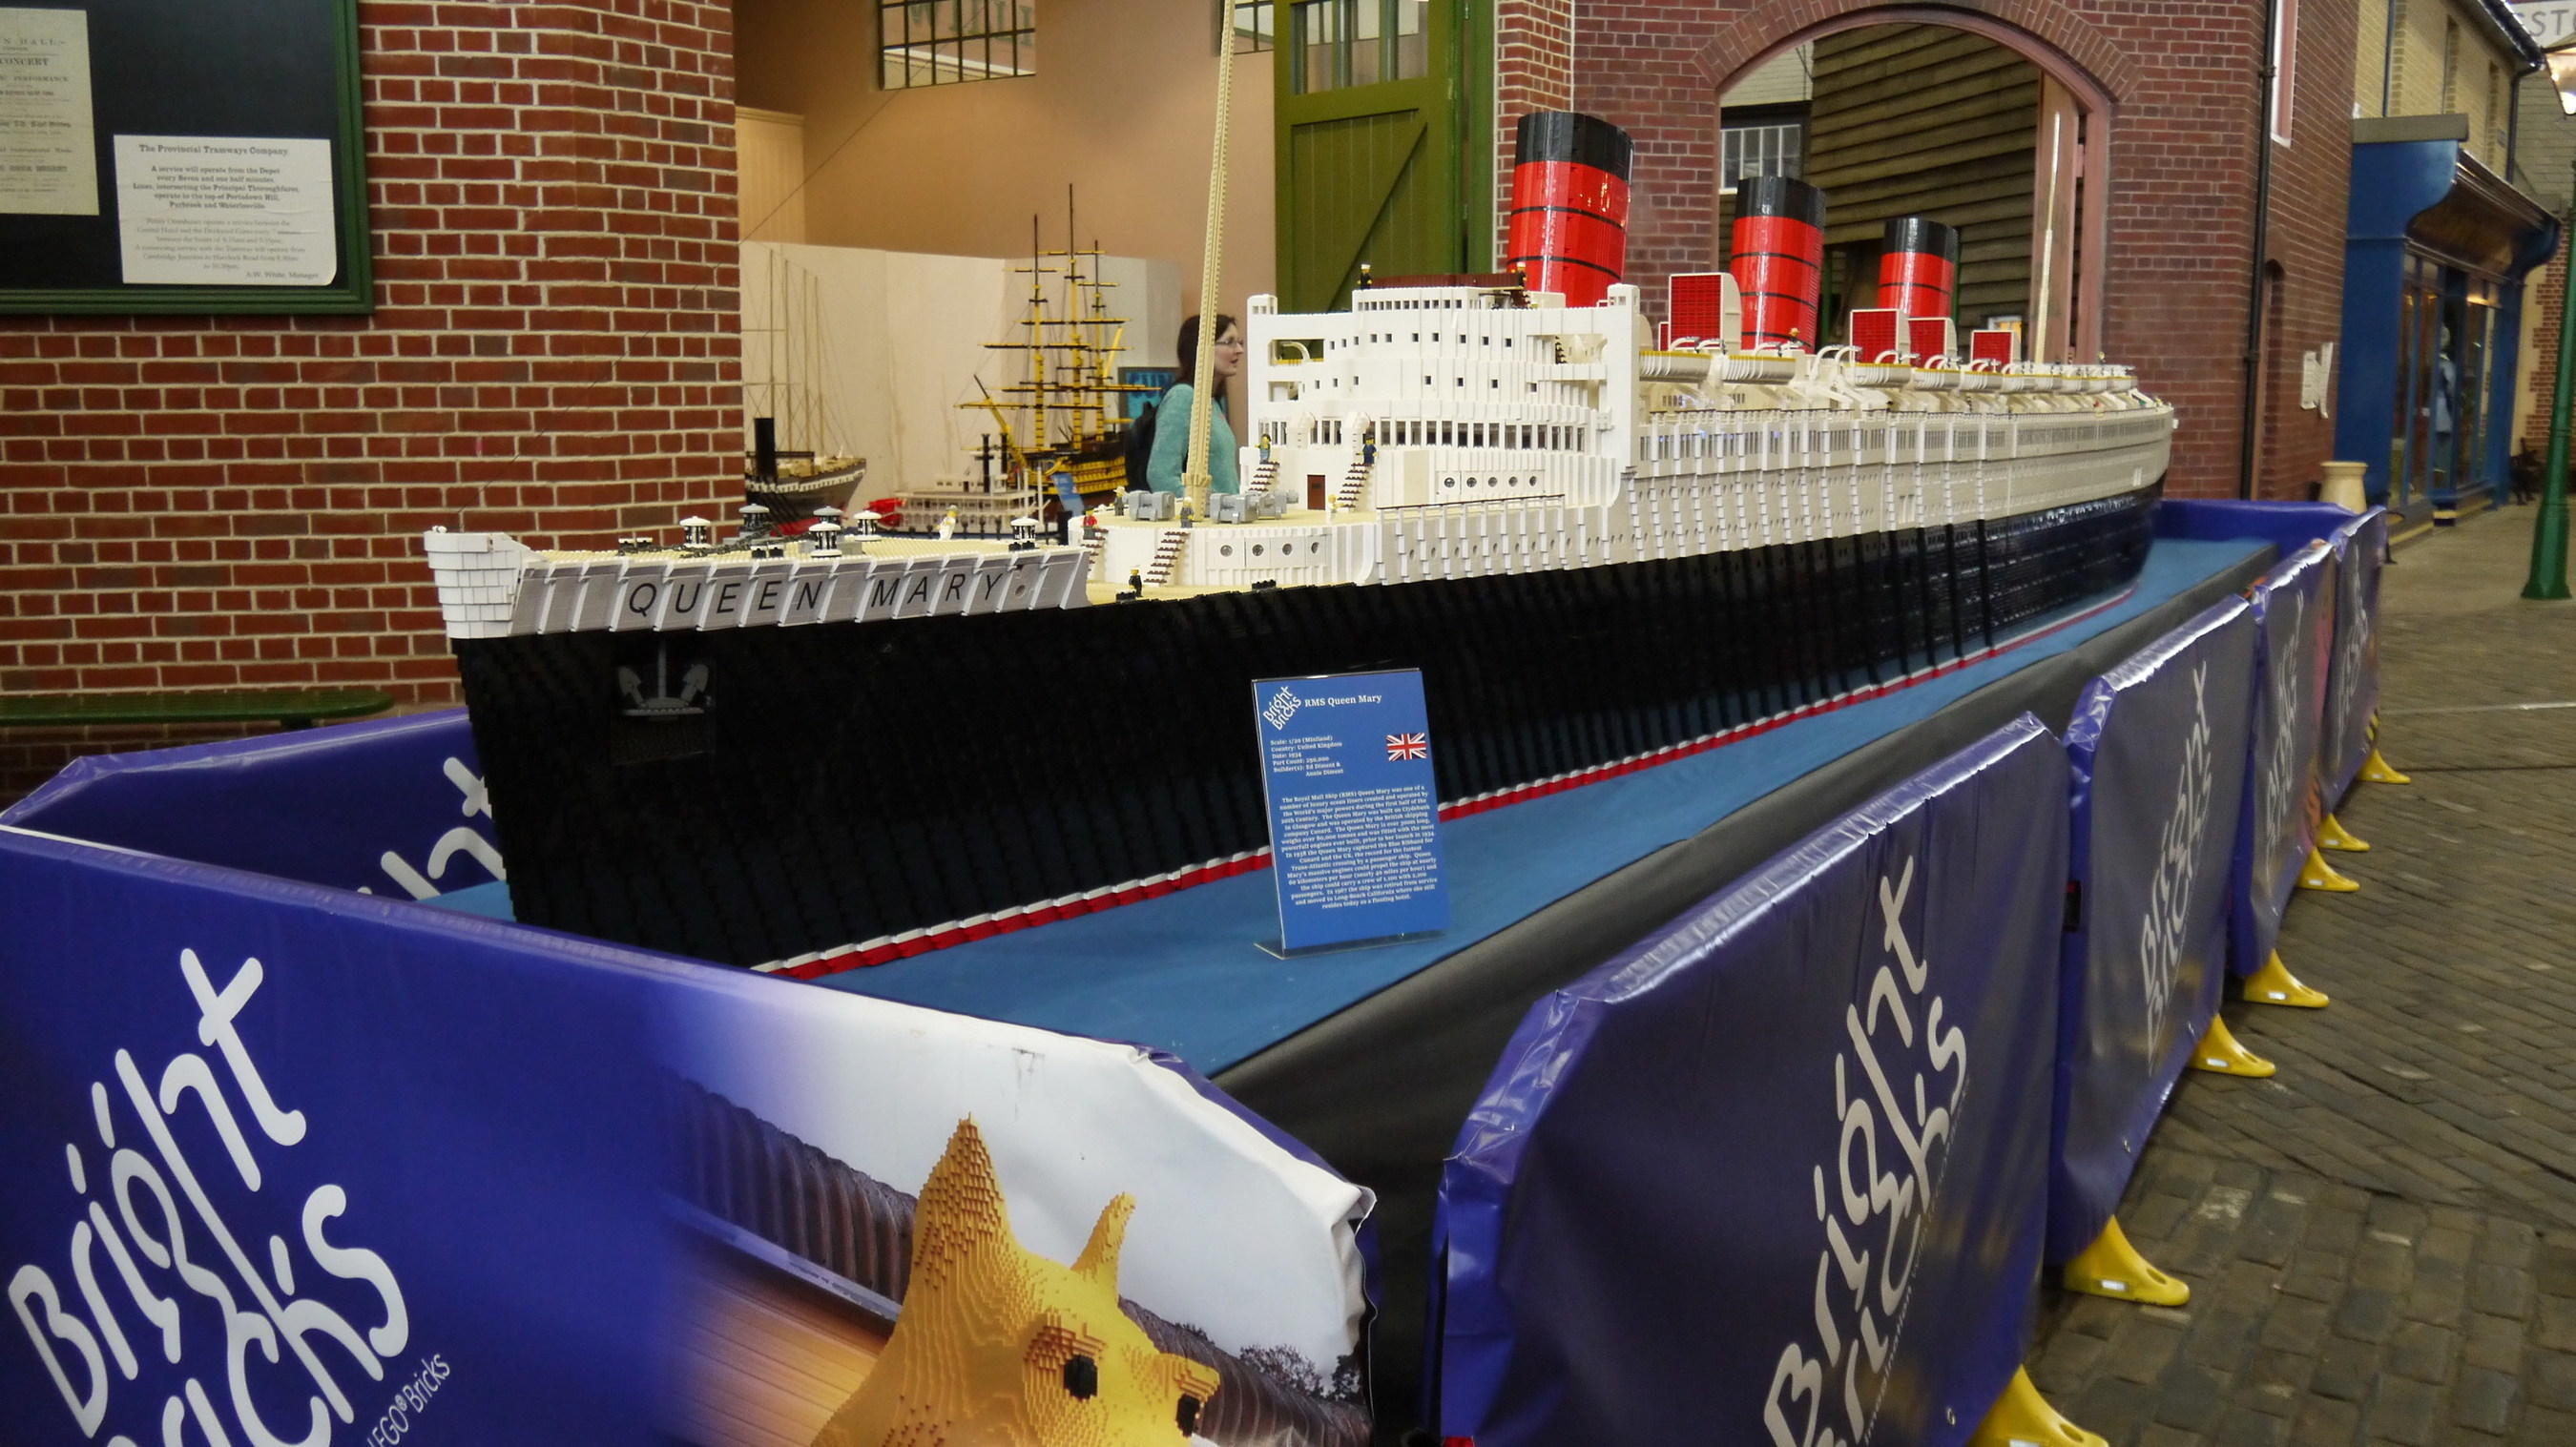 WORLD'S LARGEST LEGO(C) BRICK MODEL SHIP COMES TO THE QUEEN MARY IN LONG BEACH